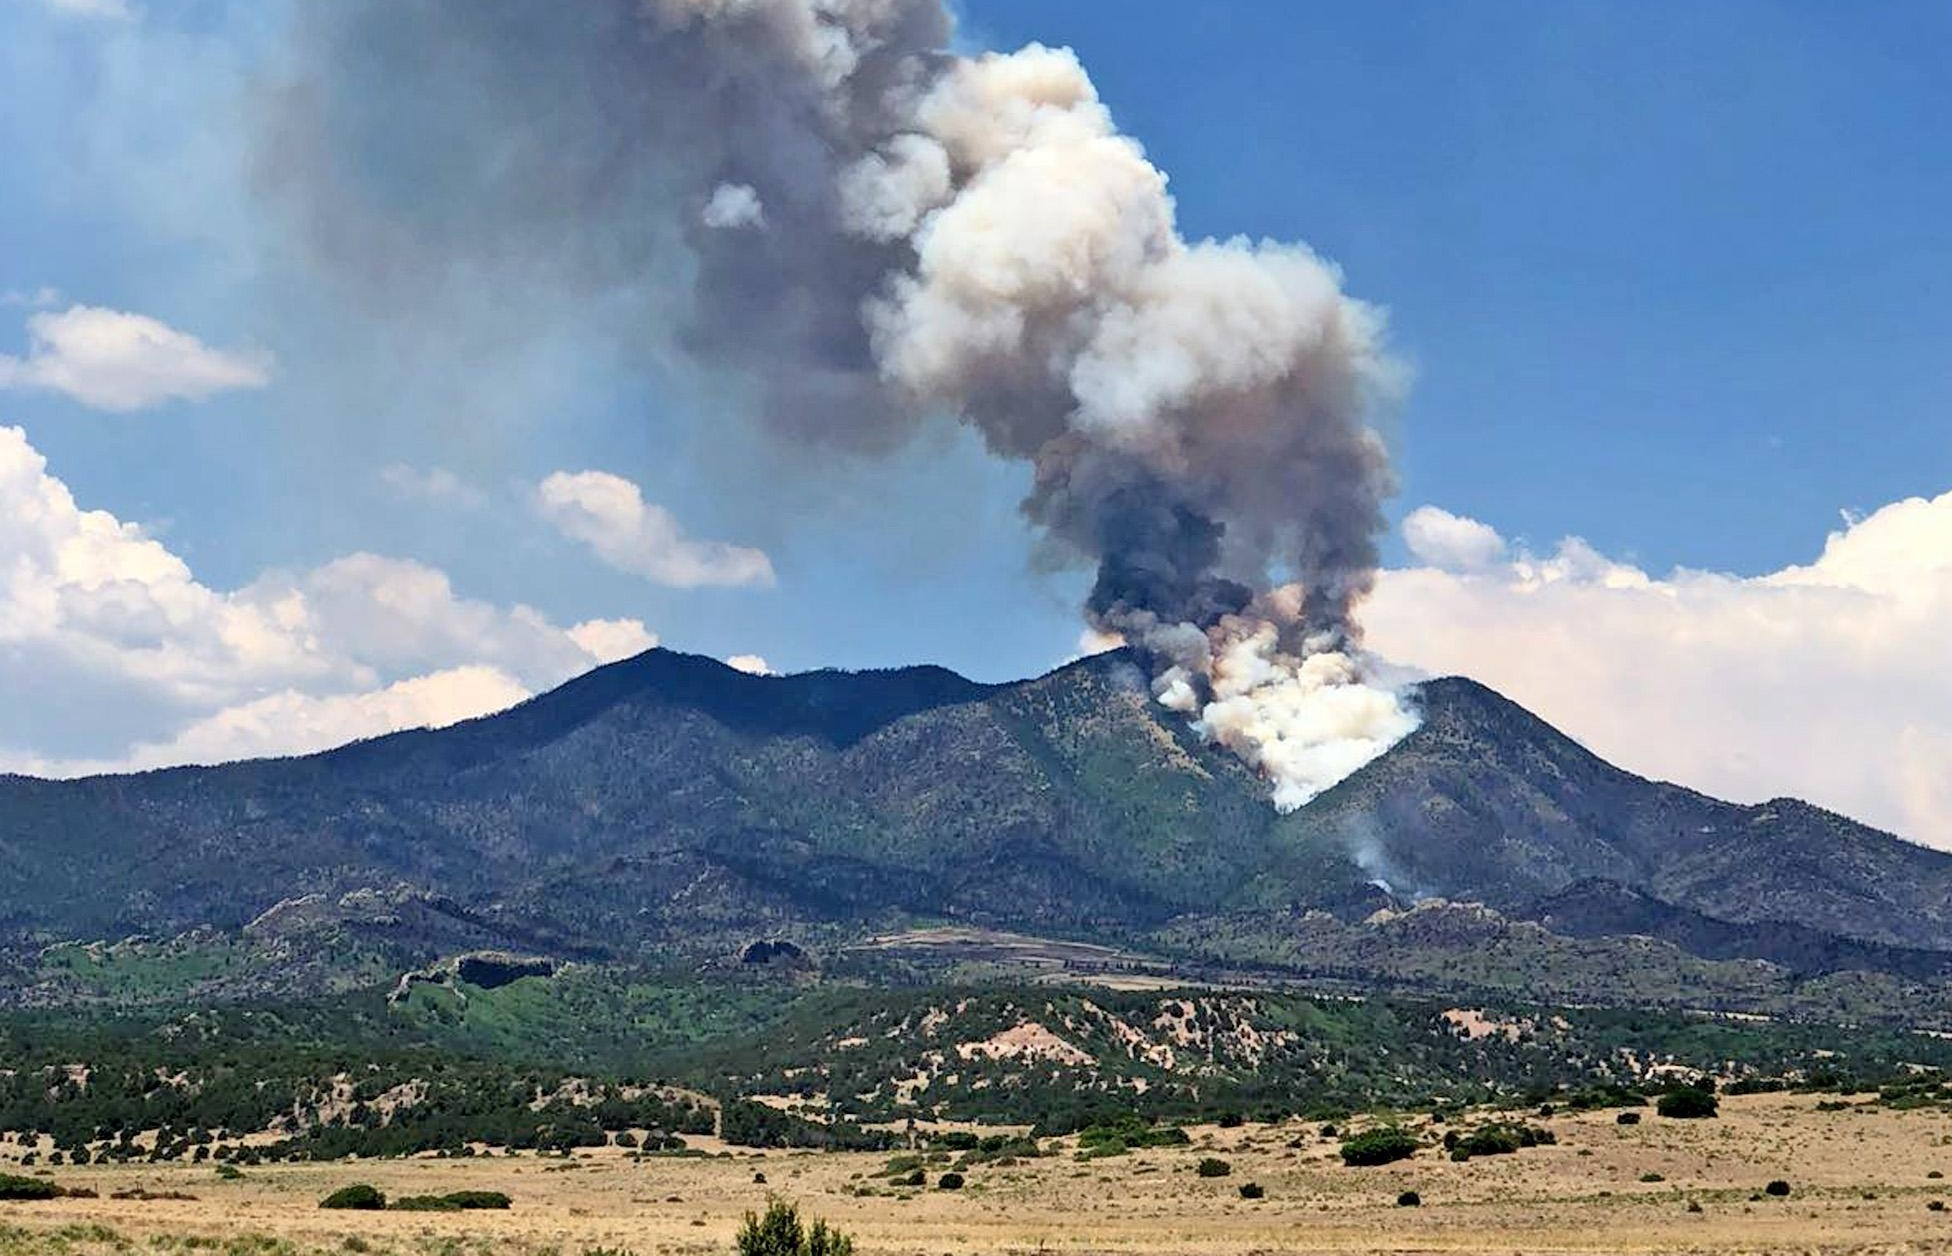 <p>A flare-up of the Spring Creek Fire on Silver Mountain, July 8, 2018.</p>